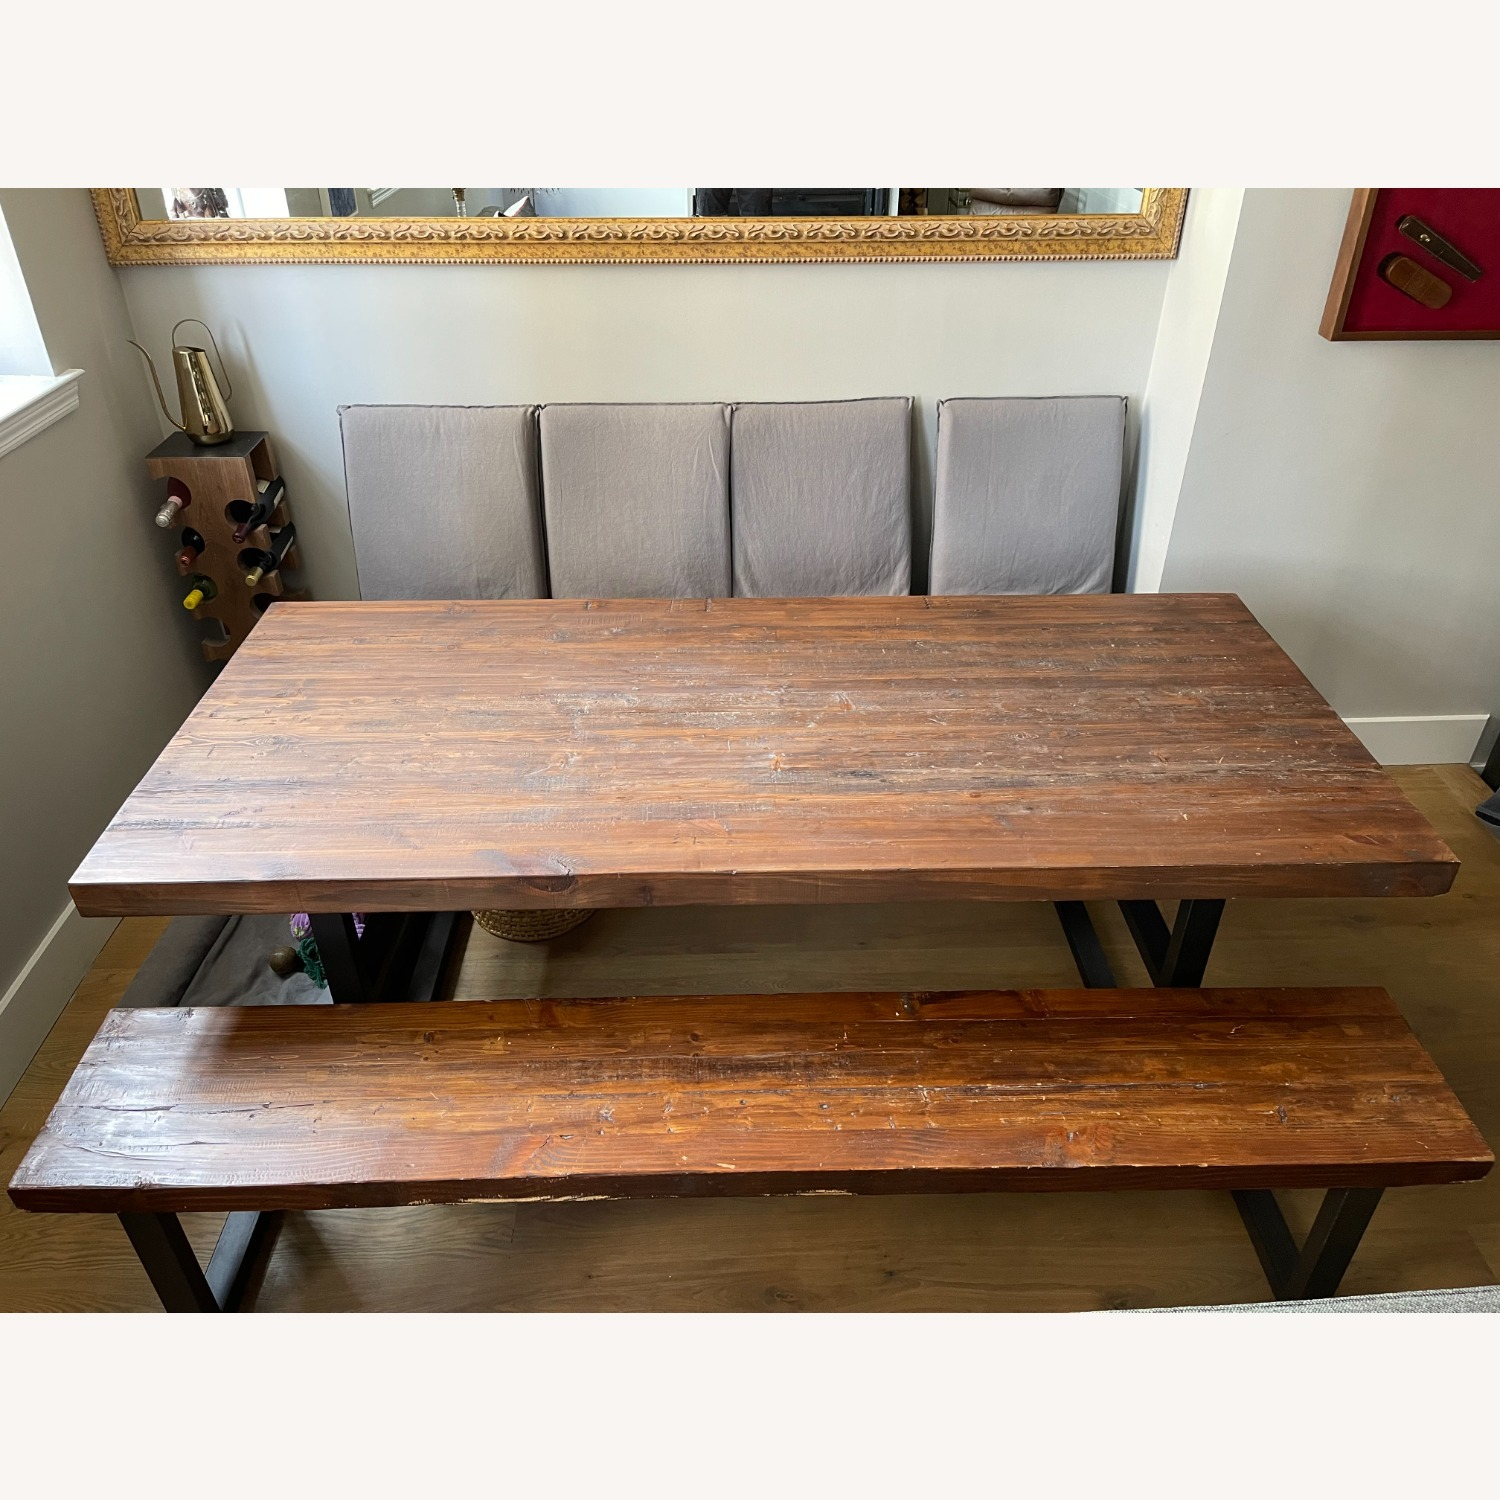 Pottery Barn Griffin Reclaimed Wood Dining Table - image-2